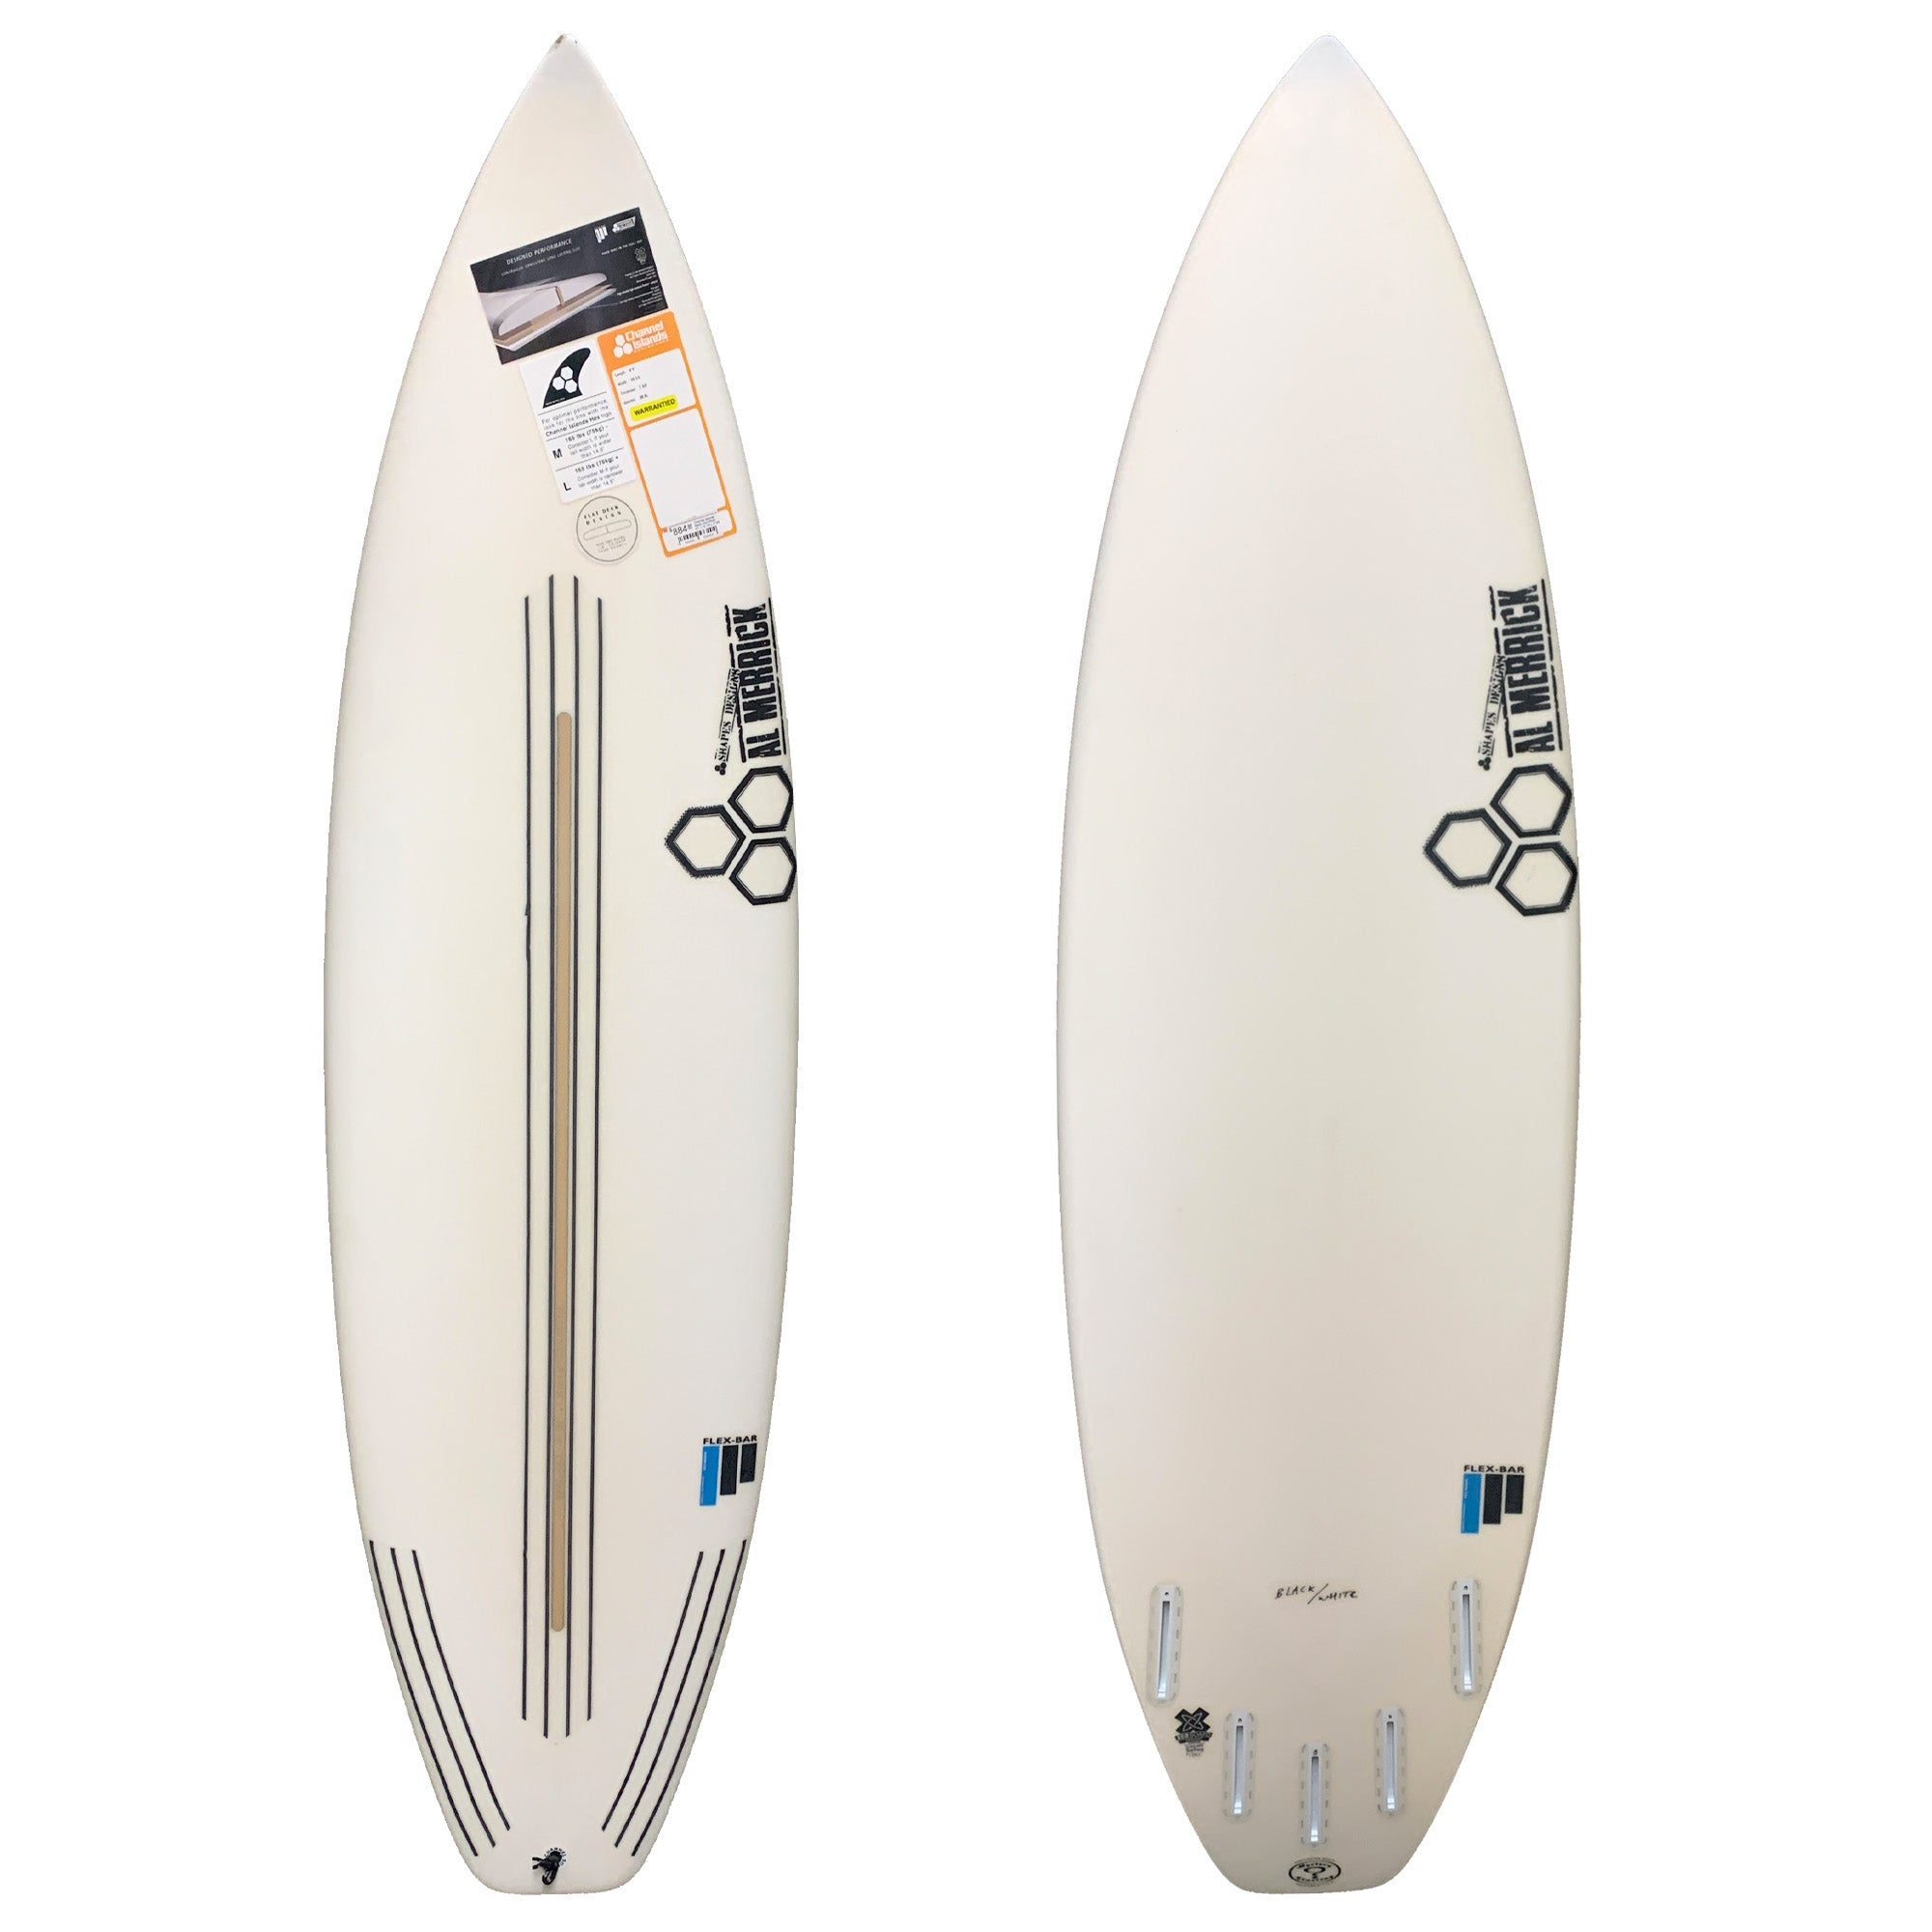 Channel Islands Black & White Flexbar Surfboard